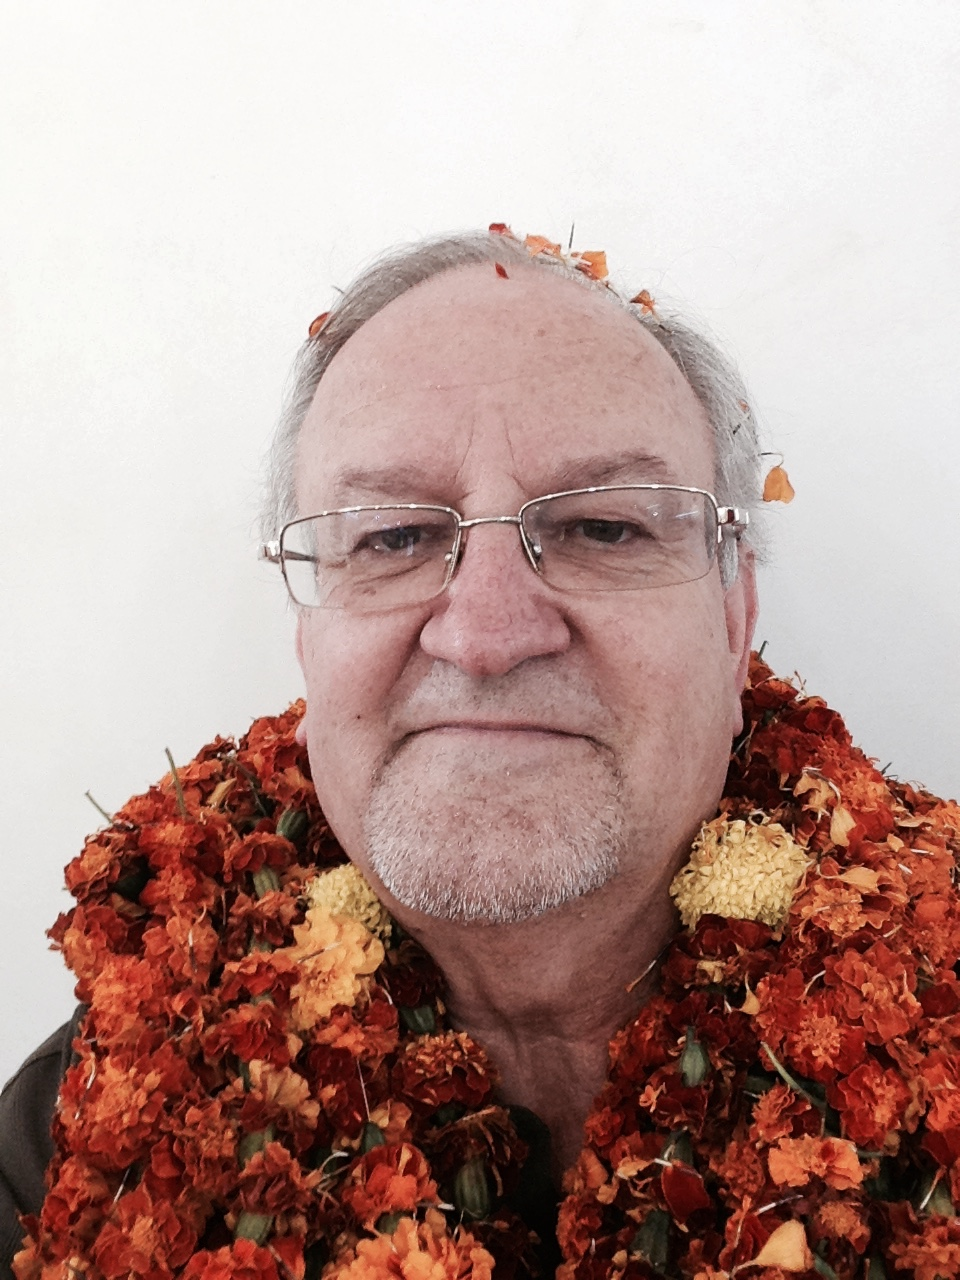 a marigold welcome in India